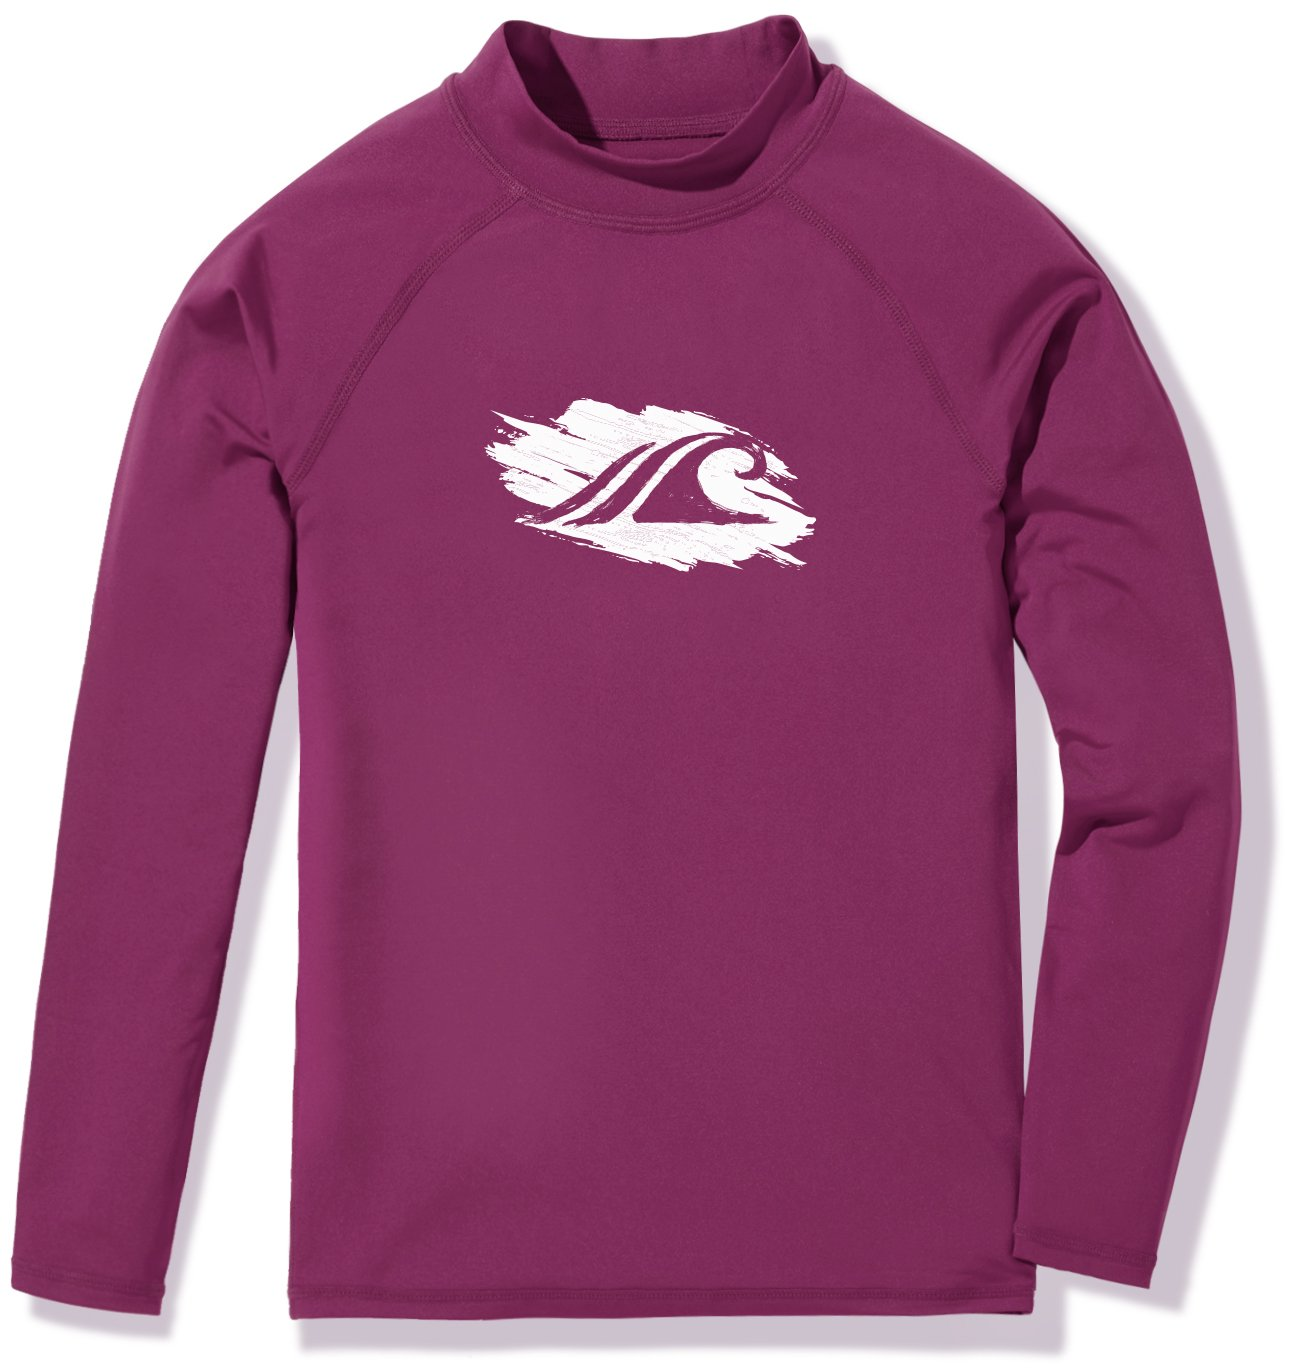 TSLA Girls UPF 50+ Long Sleeve Rashguard Youth Surf Kids Swim top, Girl Long Sleeve(gsr20) - Plum, X-Small (8). by TSLA